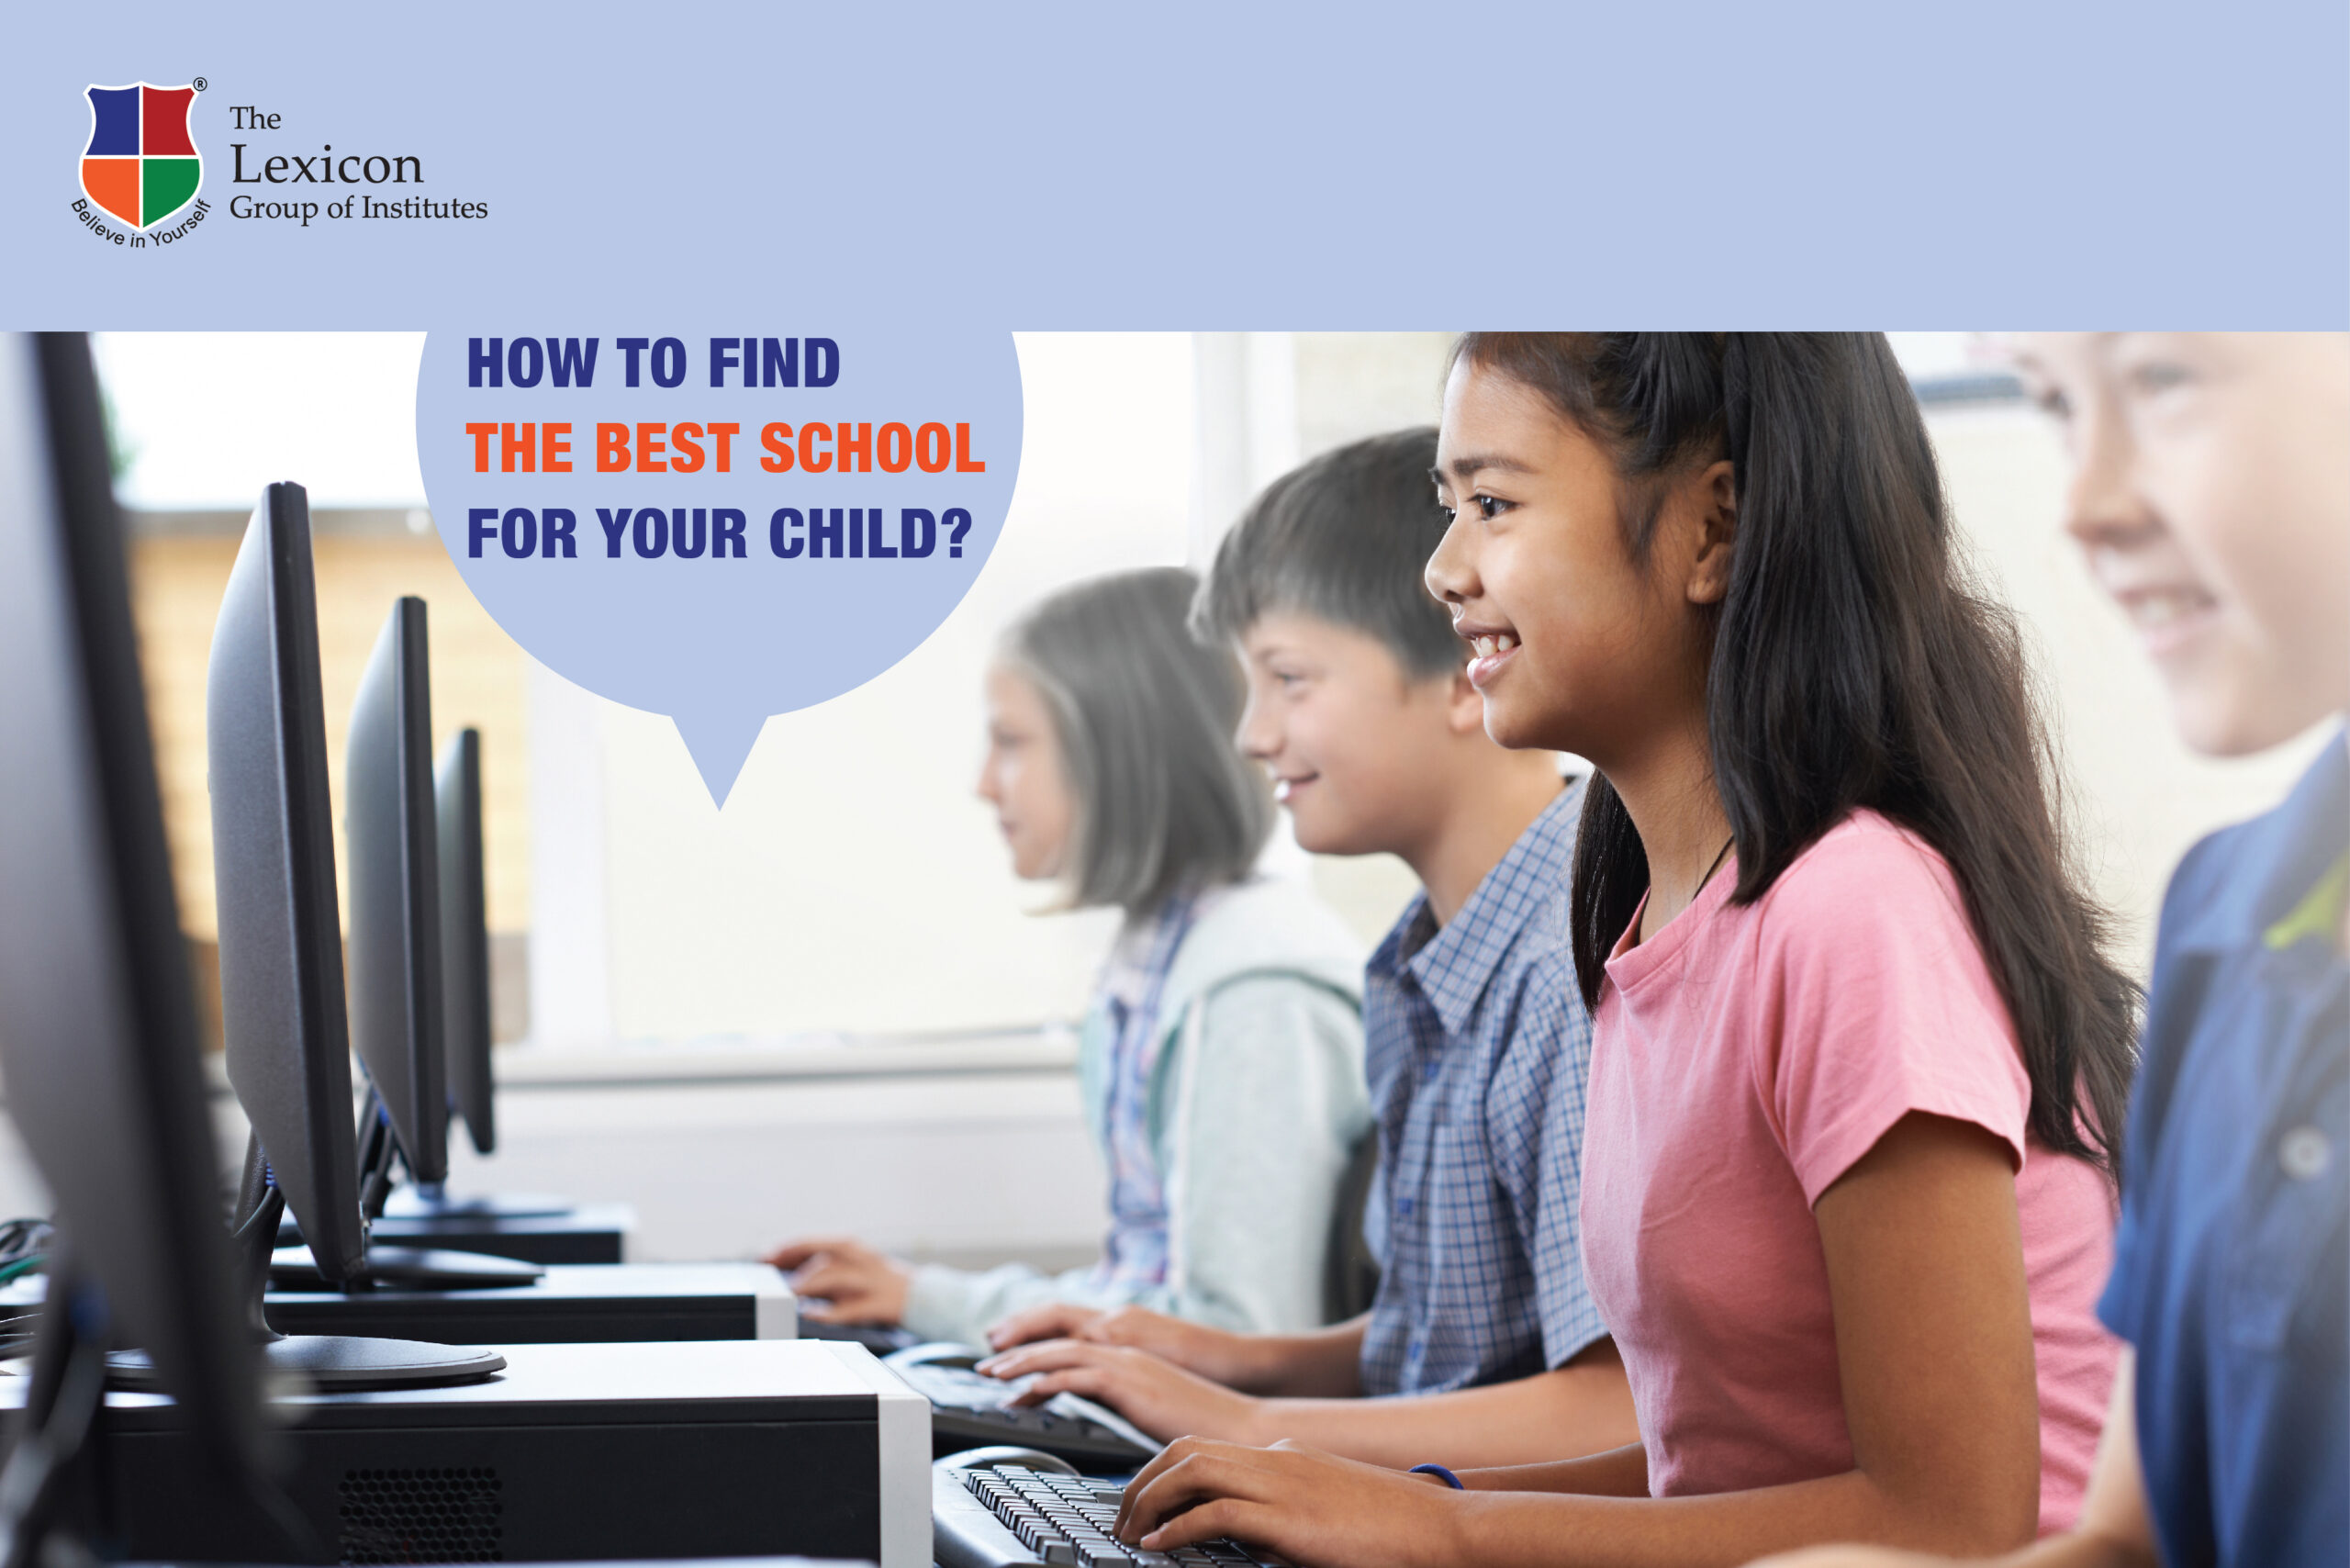 HOW TO FIND THE BEST SCHOOL FOR YOUR CHILD?